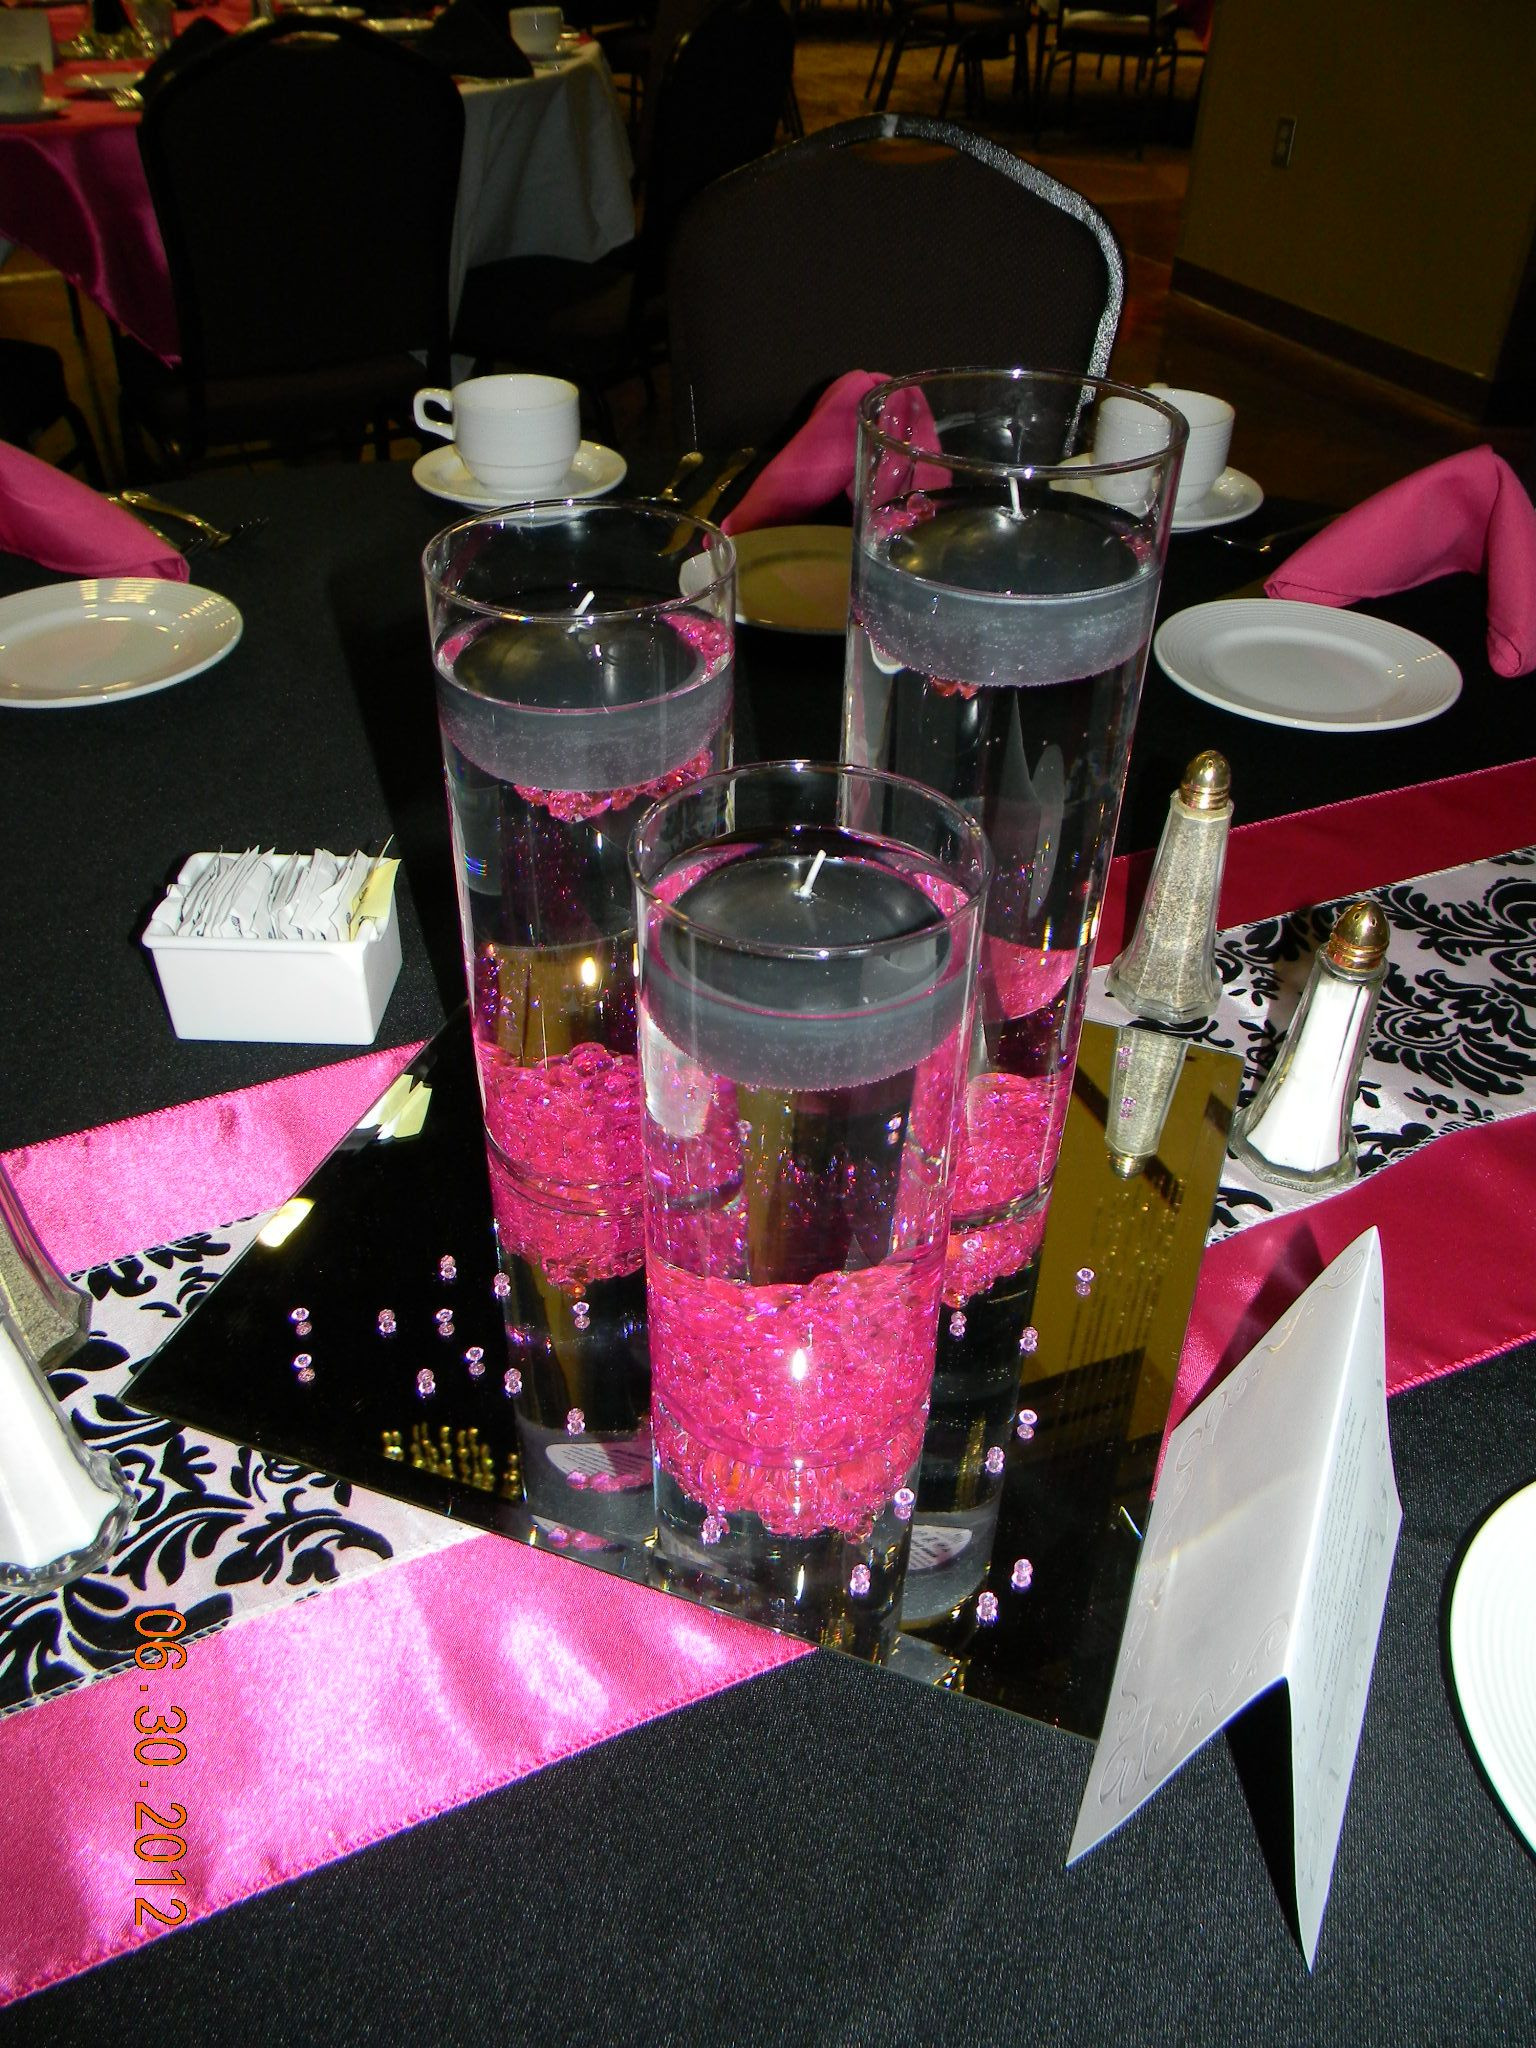 set of 3 cylinder glass vases of set of 3 cylinders black float candles fuchsia diamond gems 12x12 within set of 3 cylinders black float candles fuchsia diamond gems 12x12 square mirror fuchsia table runner black white damask table runner black tablecloth